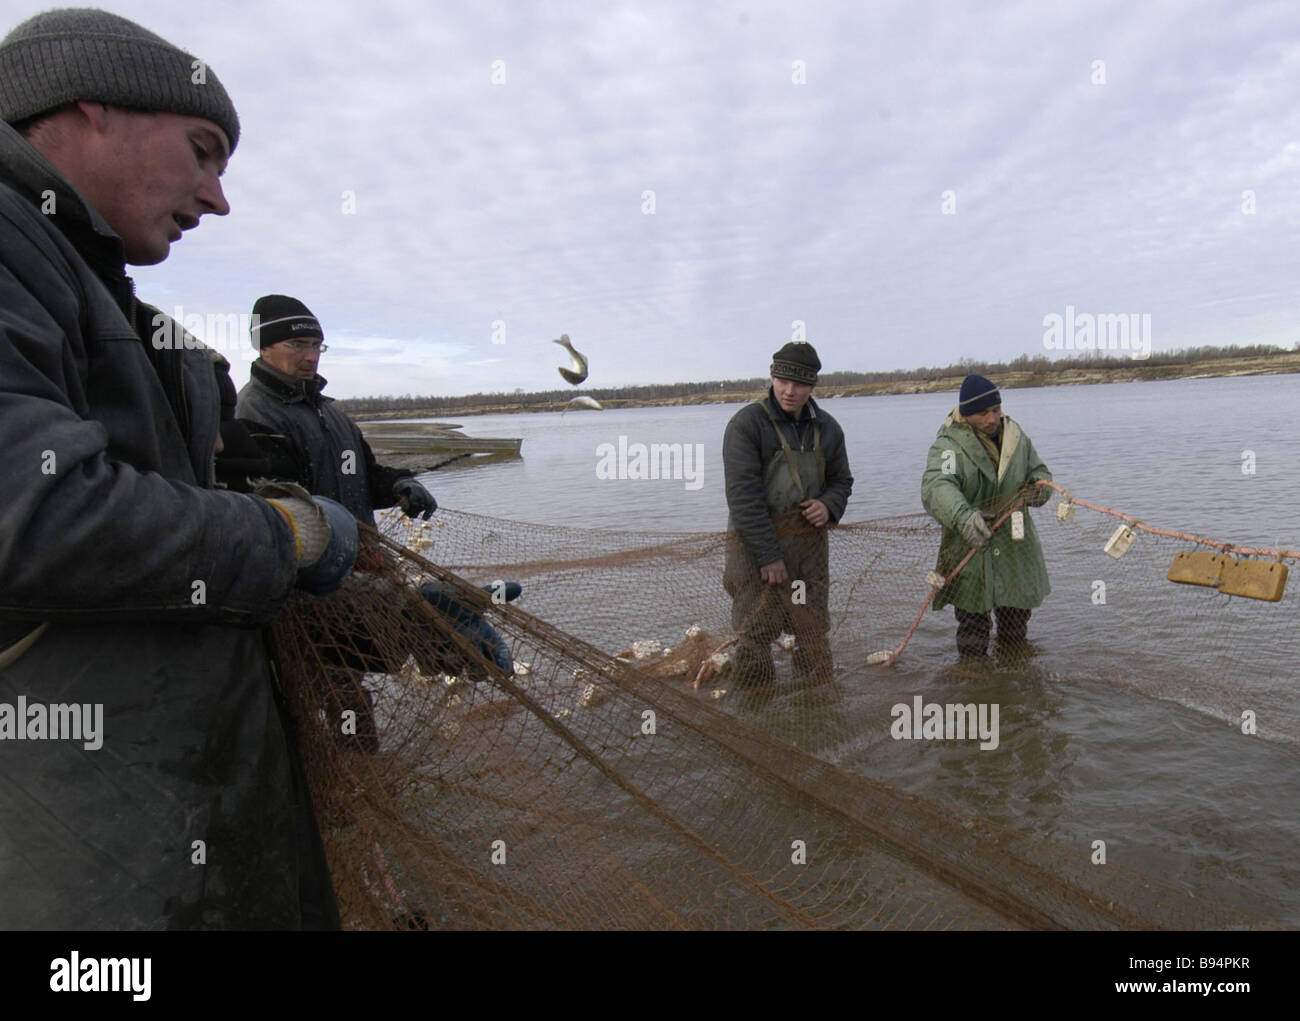 Netting fish on the Irtysh River near the village of Uvat - Stock Image